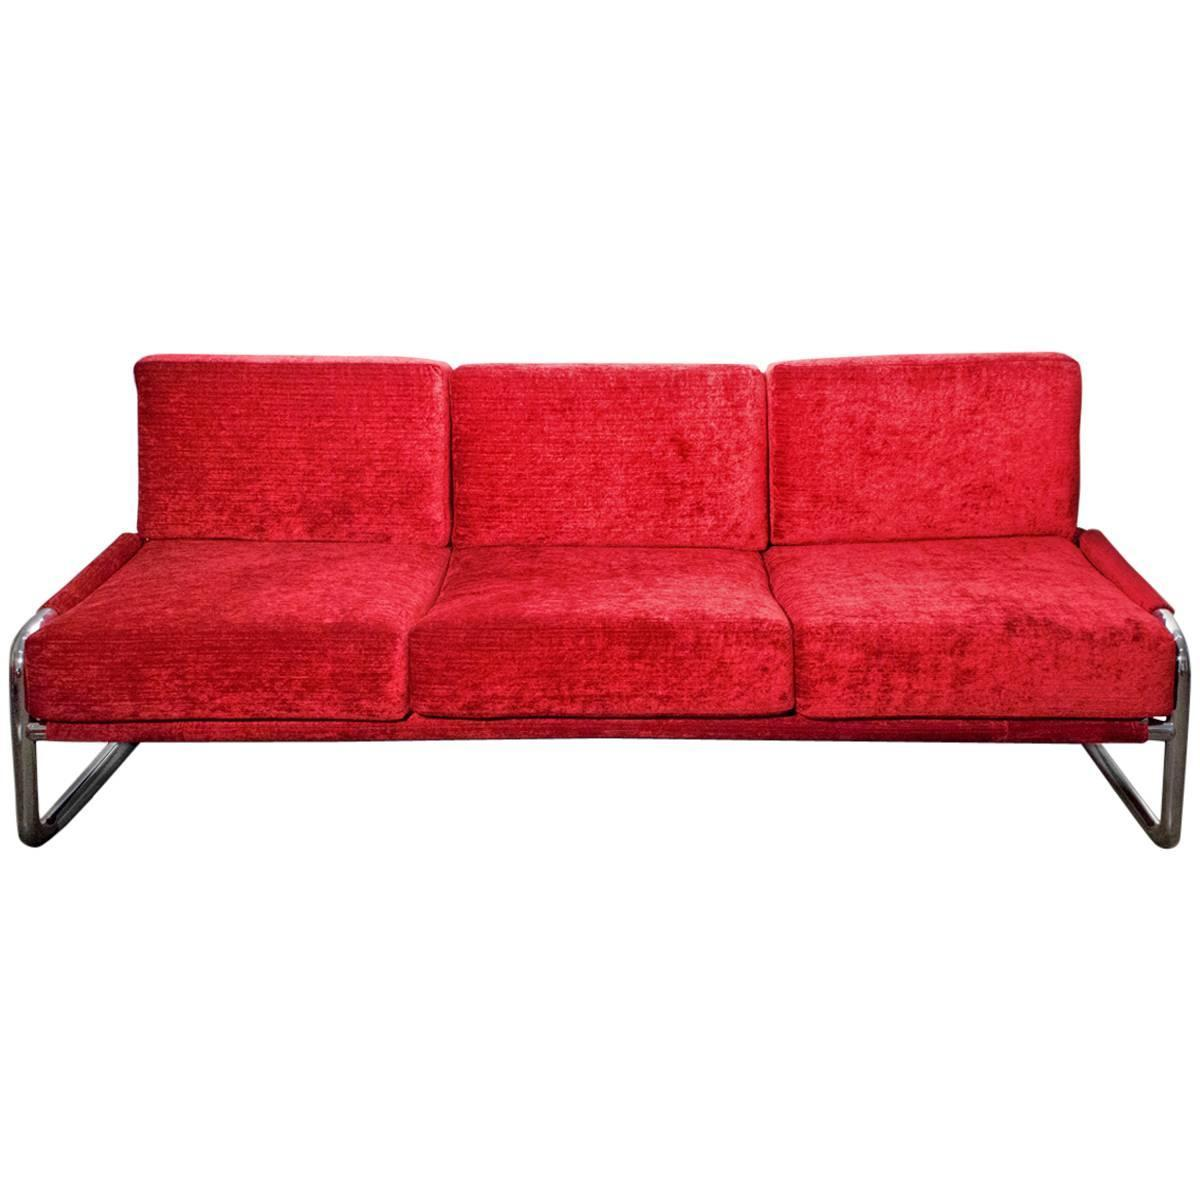 Super 1970s chrome sofa and armchair set for sale at 1stdibs - Super sofa ...